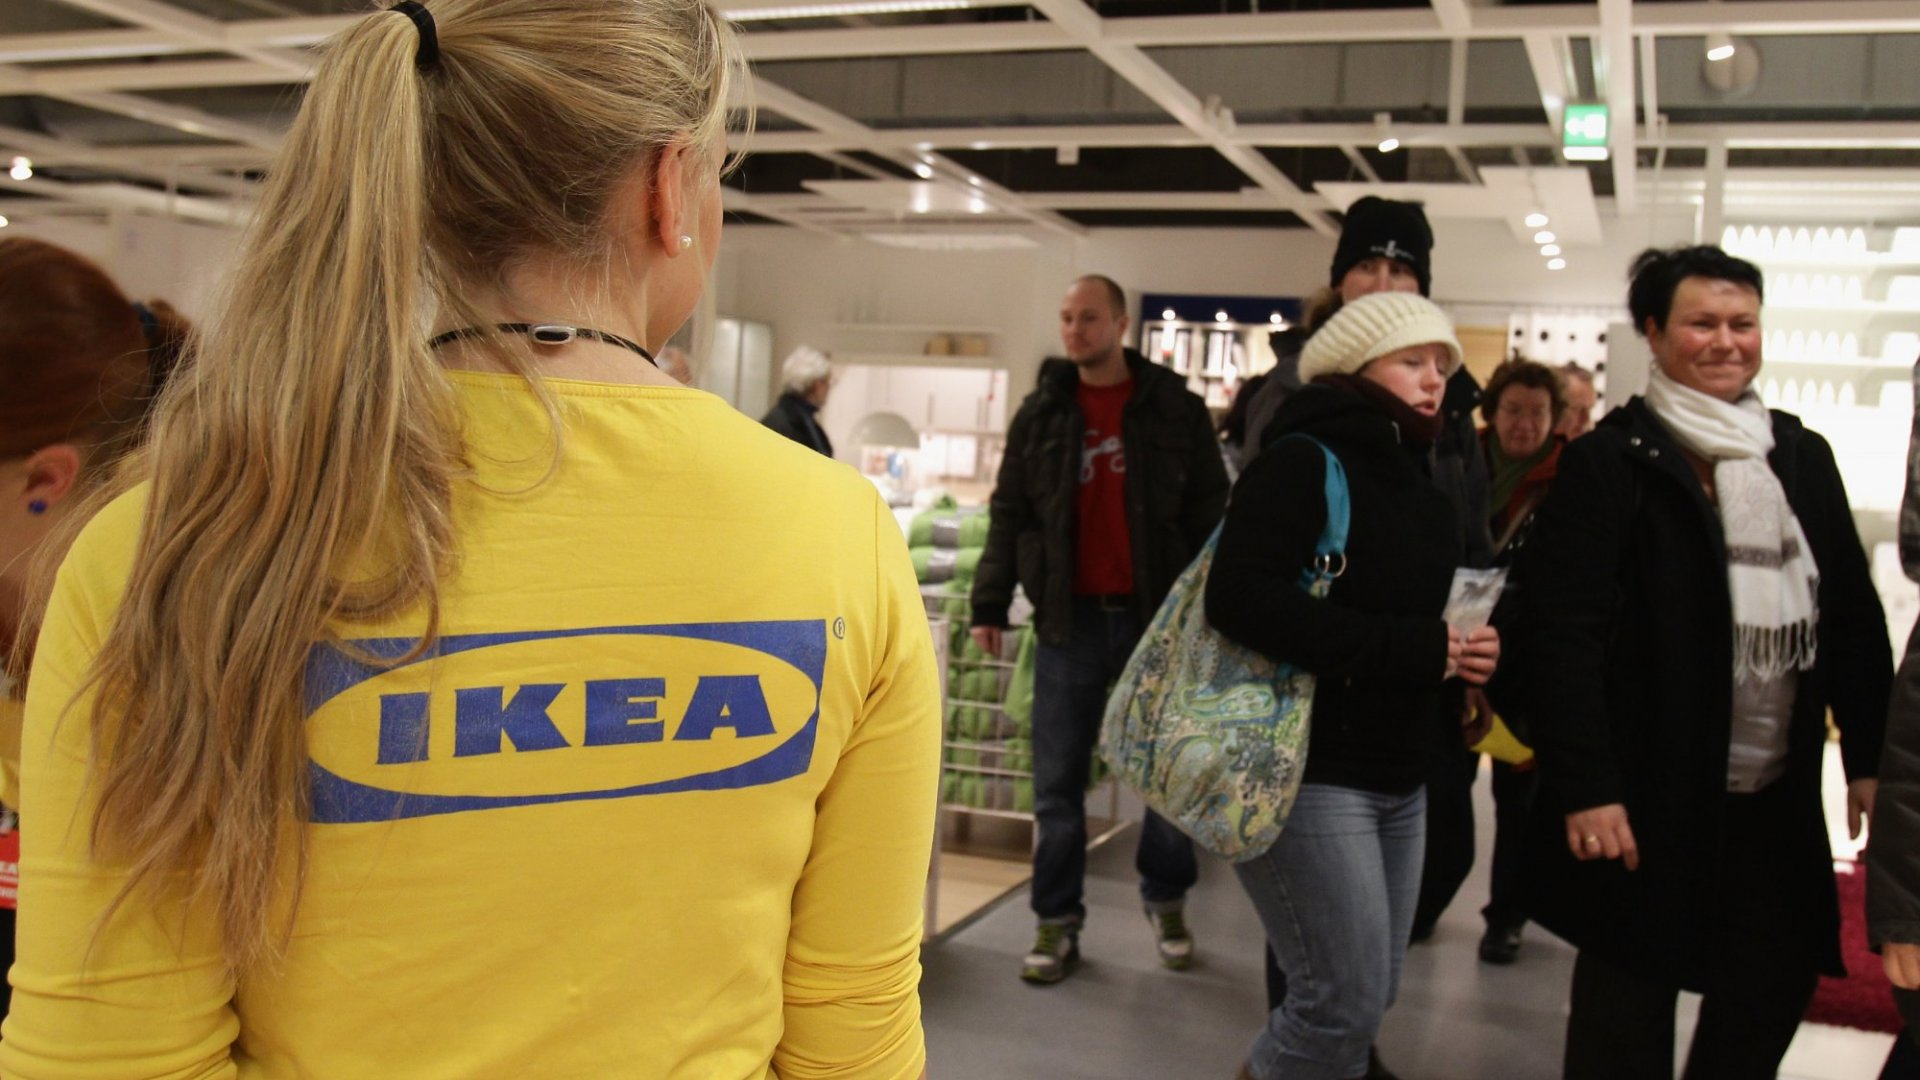 Ikea Called the Police on an Organized Event. It Missed the Business Opportunity of a Lifetime